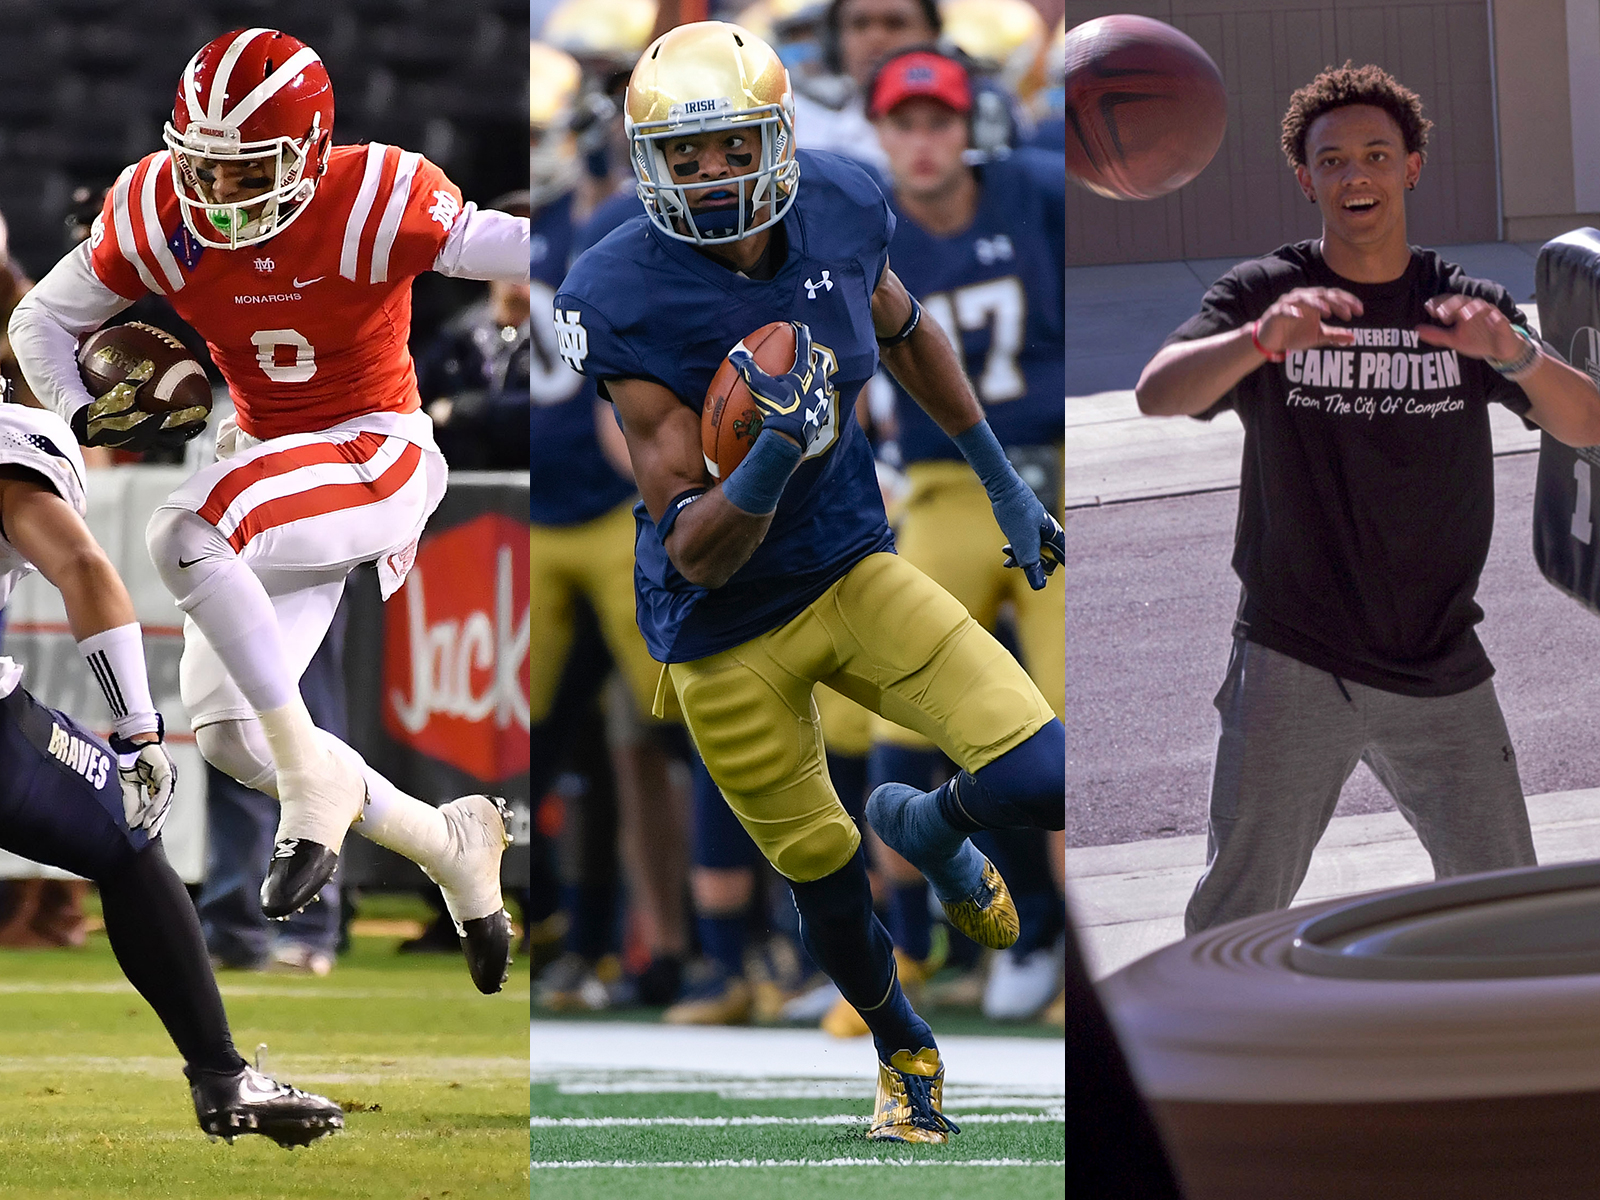 Amon-Ra (left) is a five-star recruit with his choice of top college programs; Equanimeous (center) is Notre Dame's top target, and Osiris (right) chose to play at one of their mother's dream schools, Stanford.